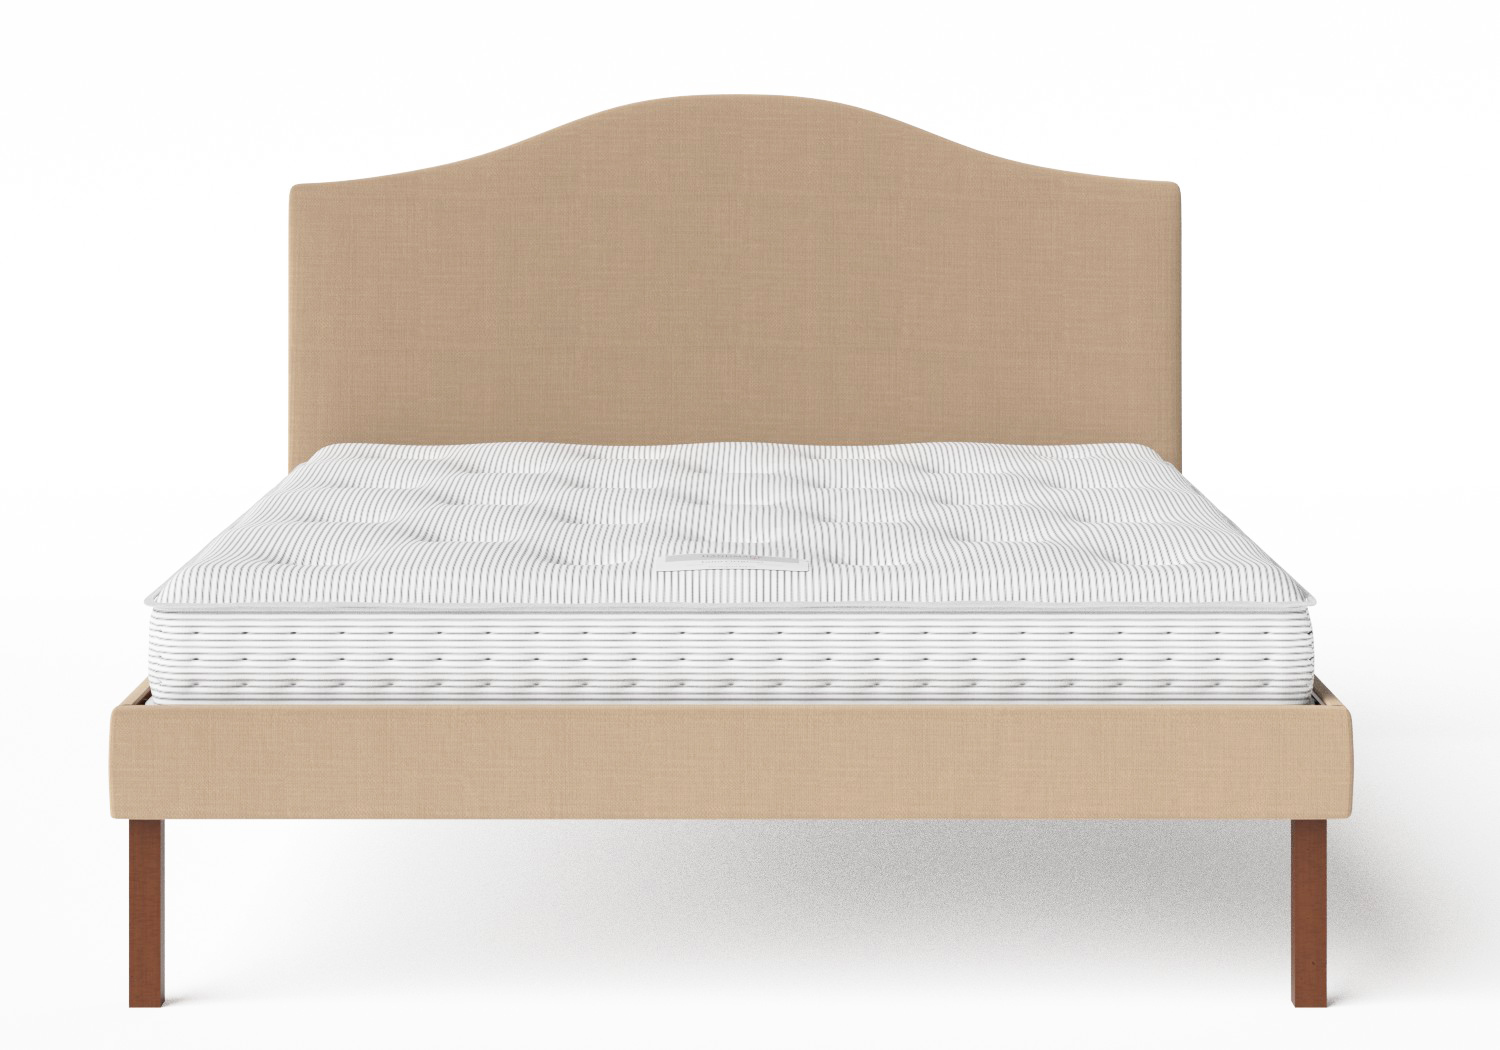 Yoshida Upholstered Bed with Straw fabric shown with Juno 1 mattress